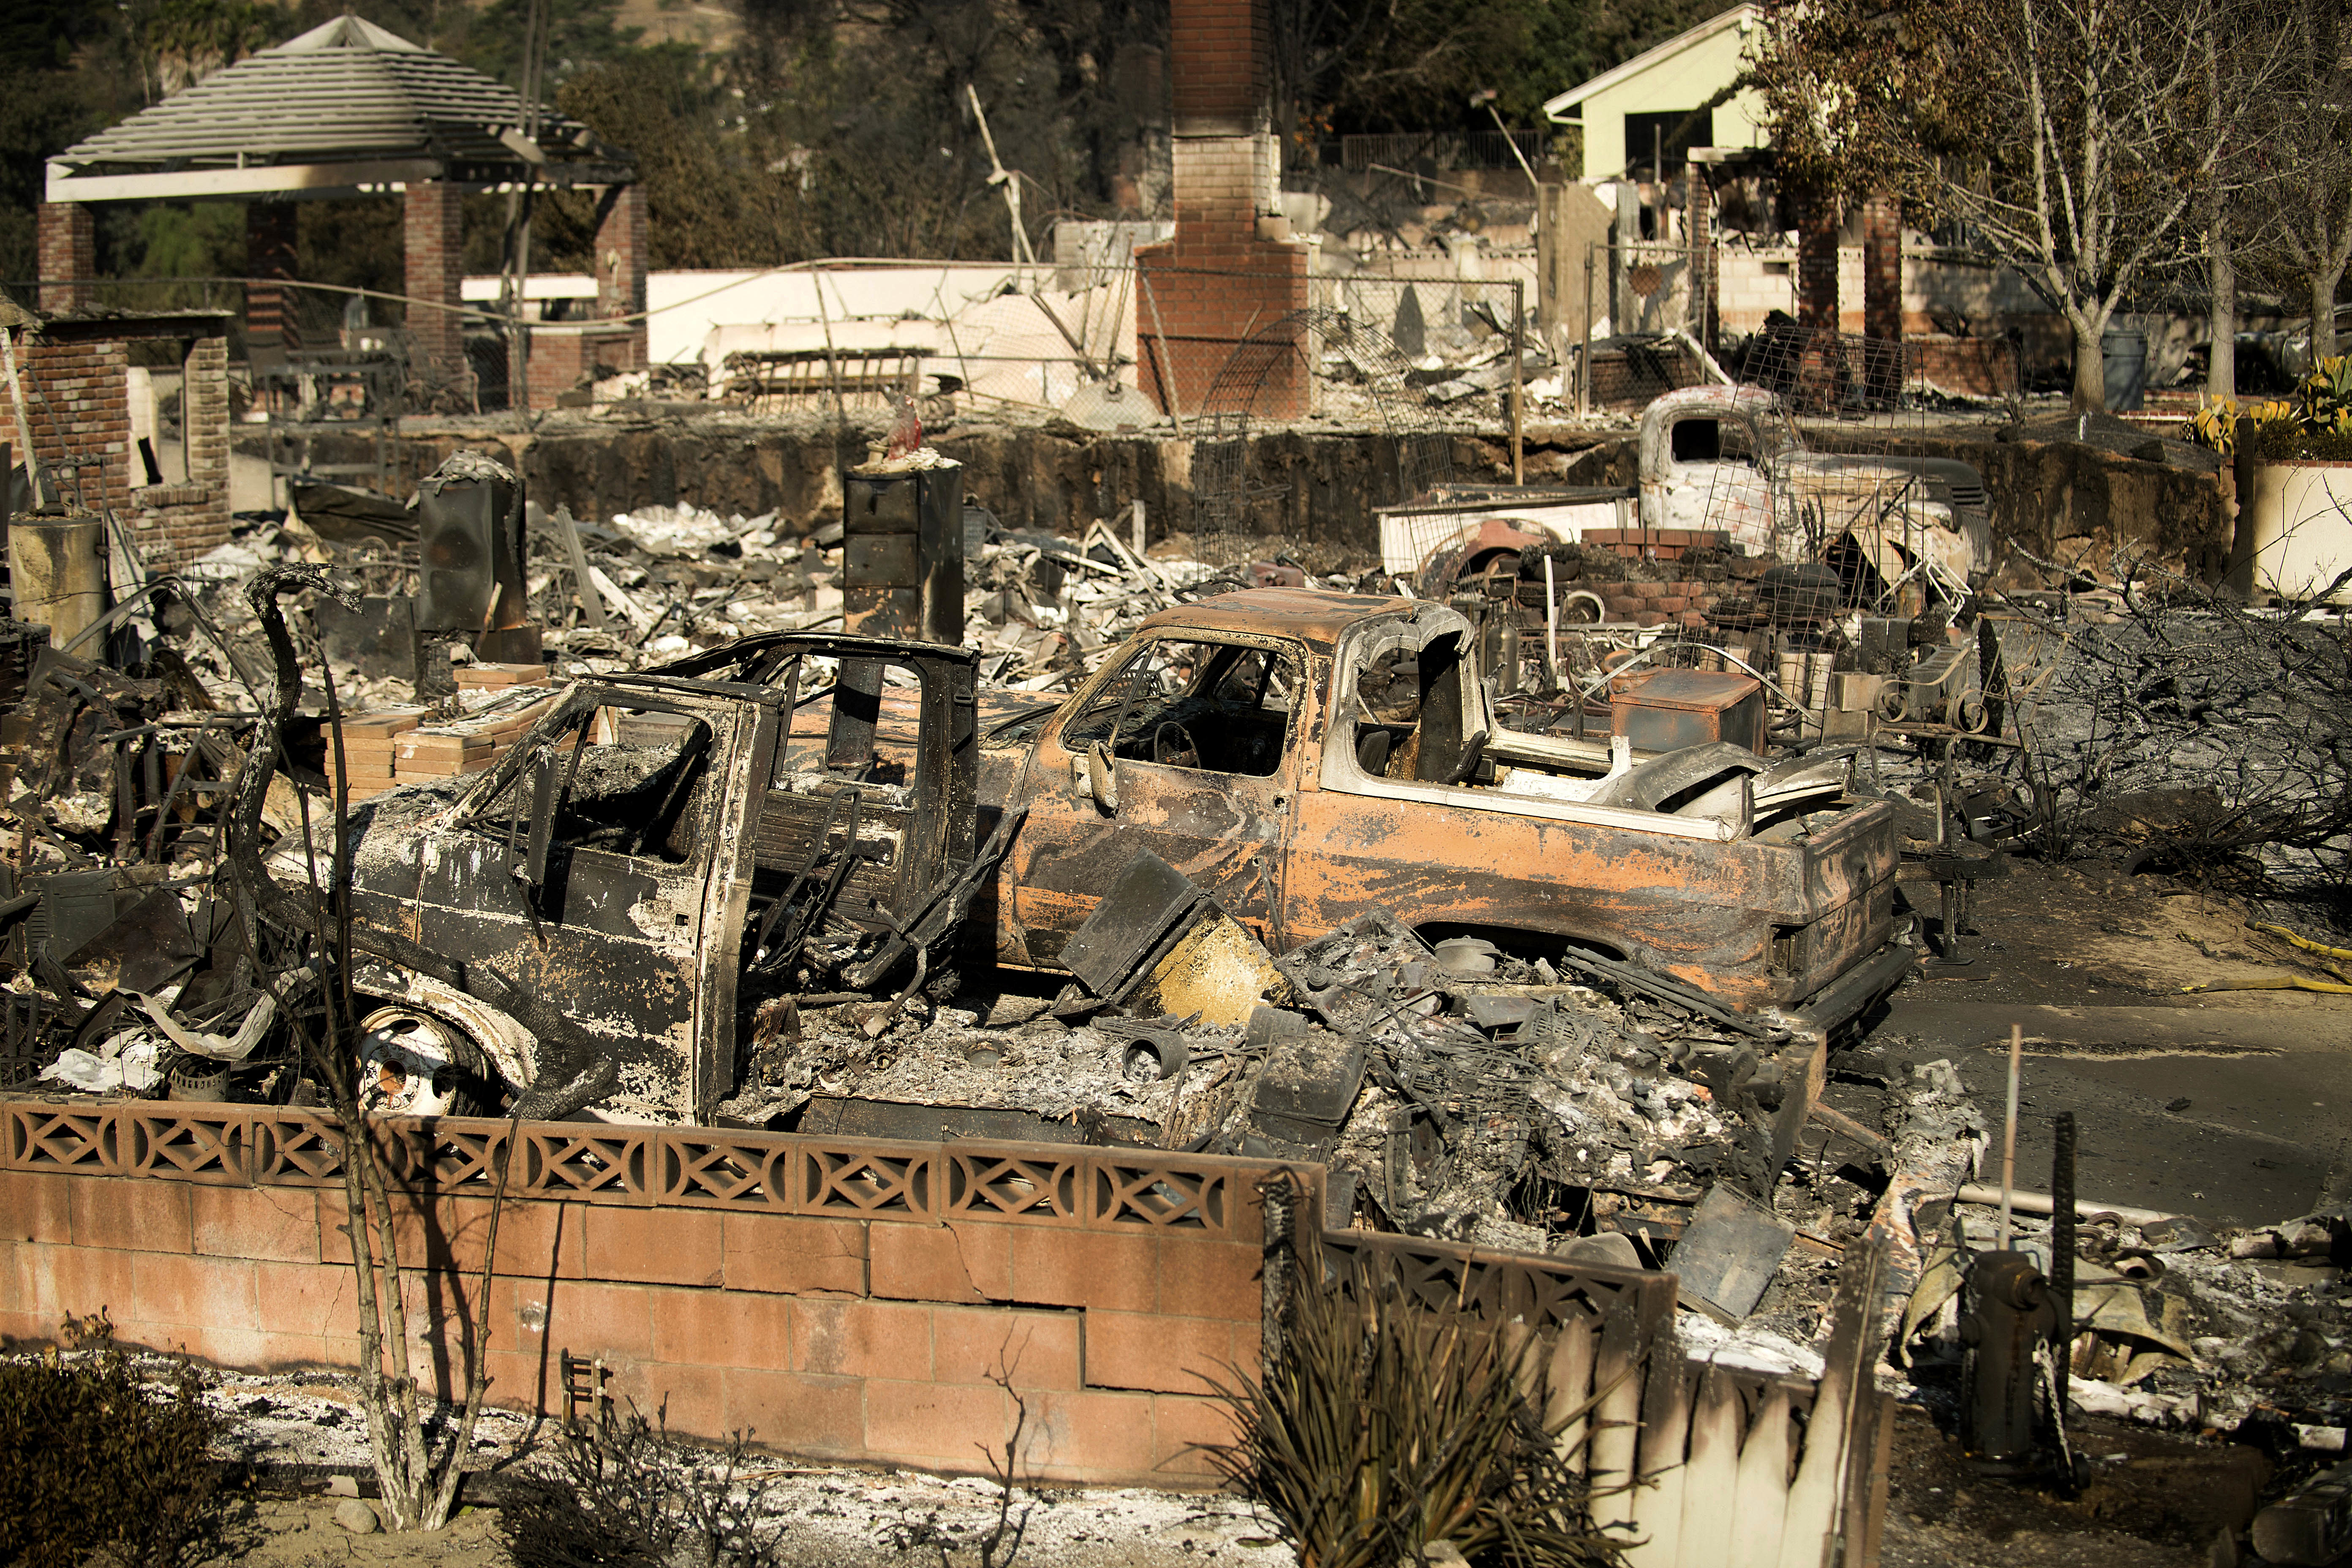 Rubble and burned vehicles line properties scorched by a wildfire  (Noah Berger/AP)